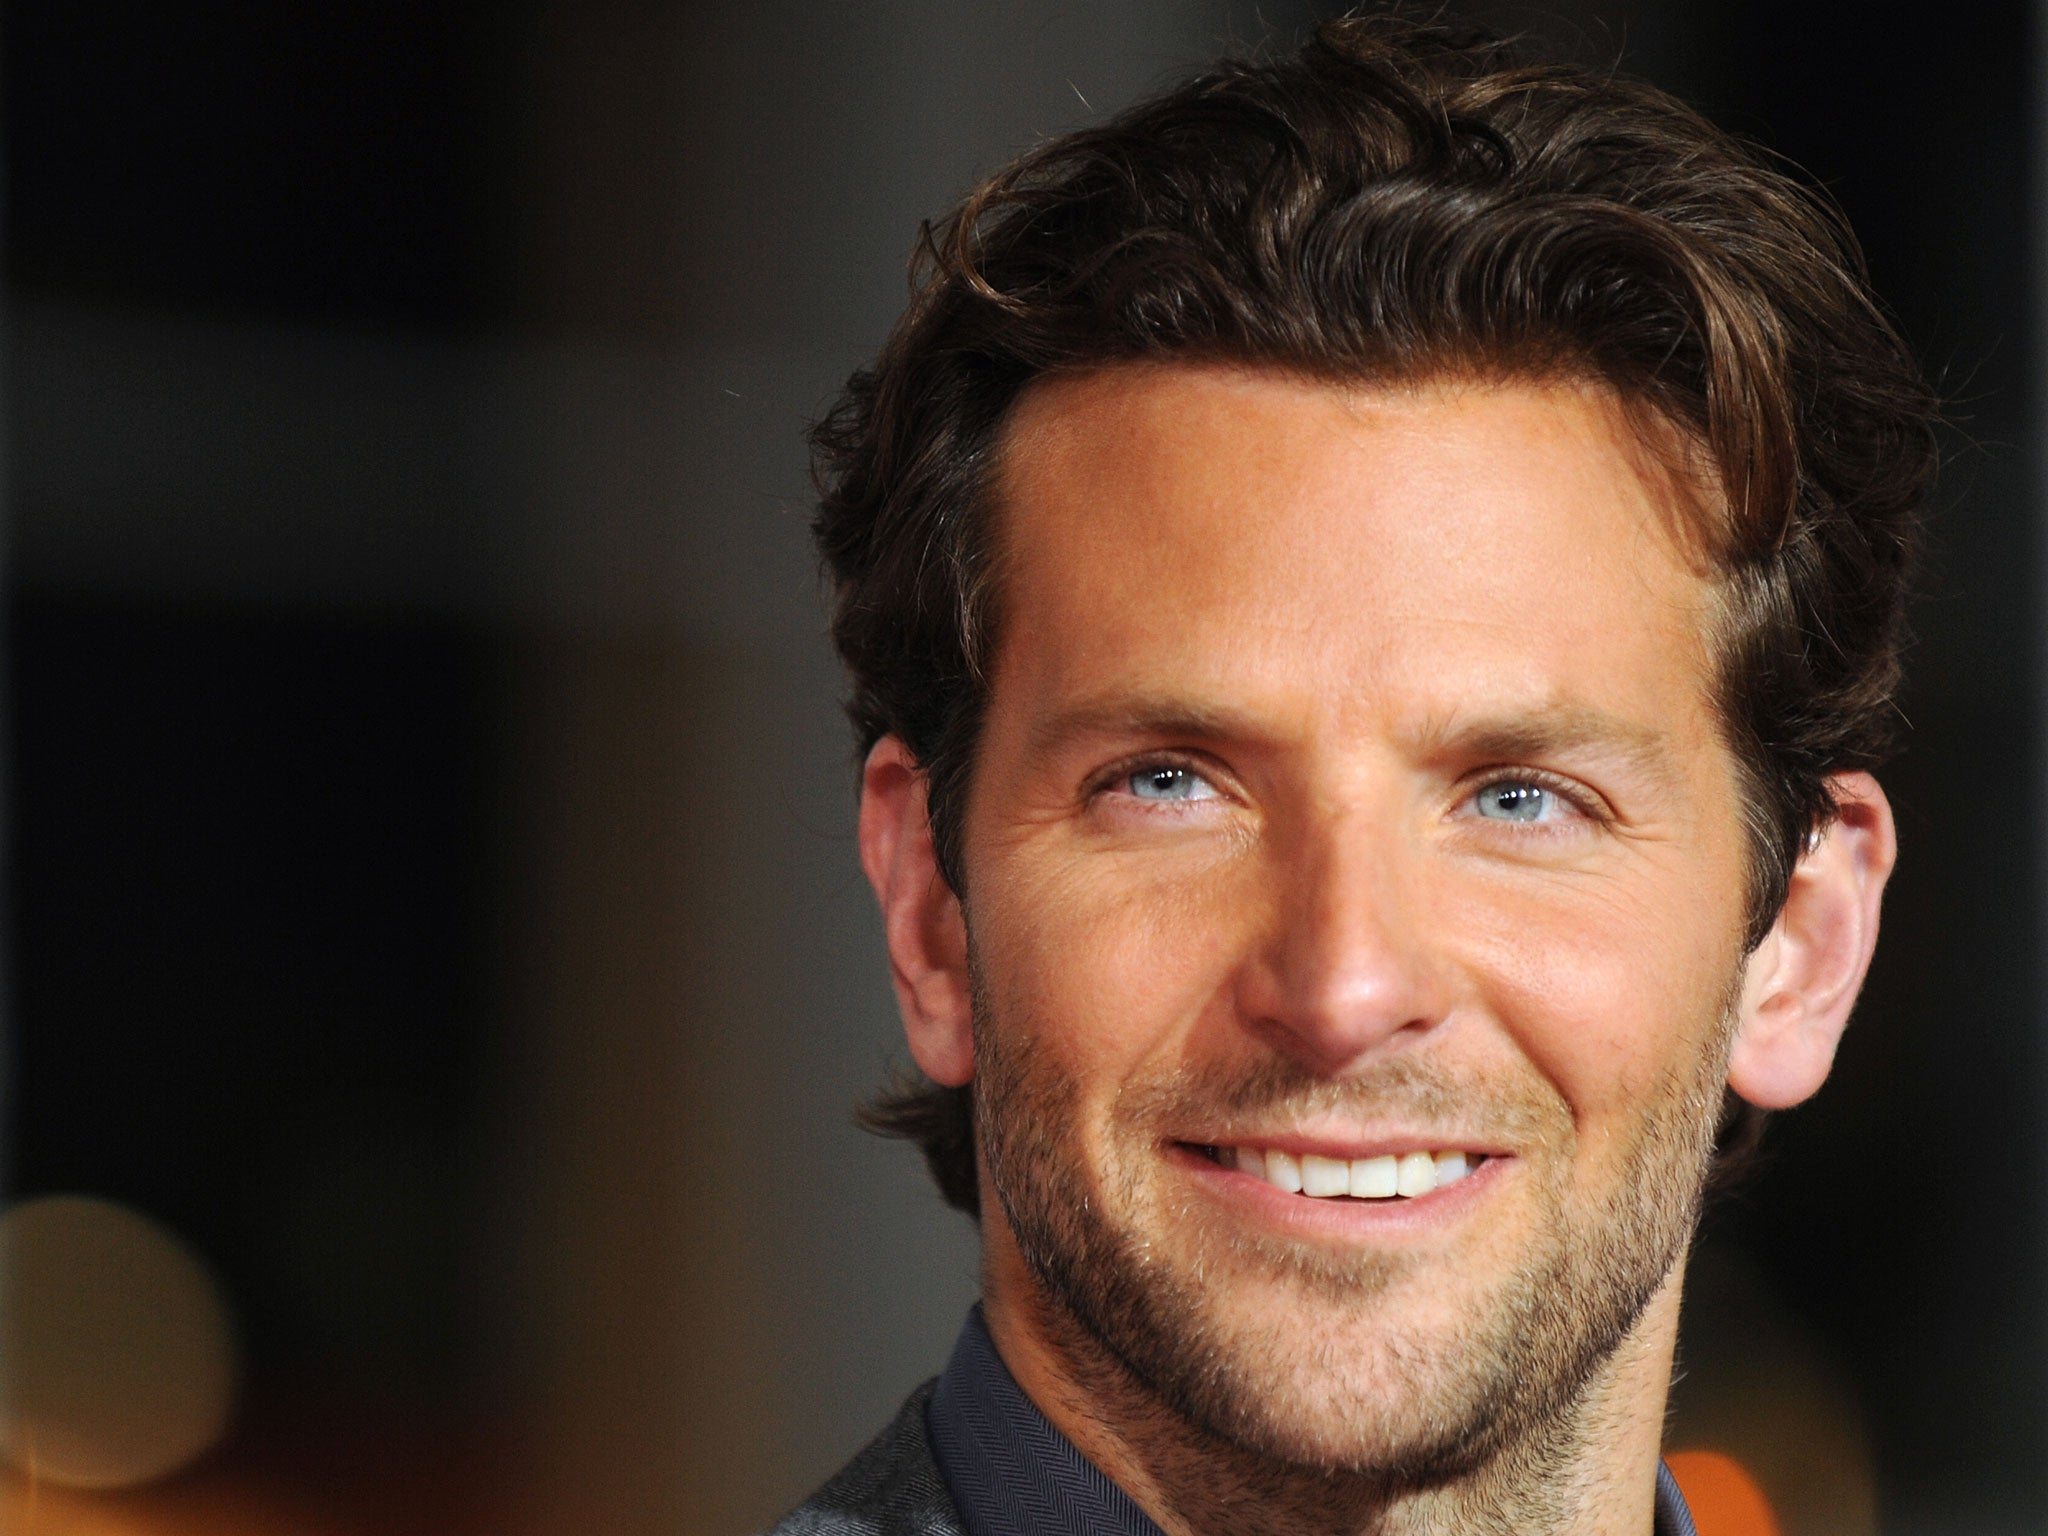 Bradley Cooper earned a 4.4 million dollar salary - leaving the net worth at 60 million in 2018